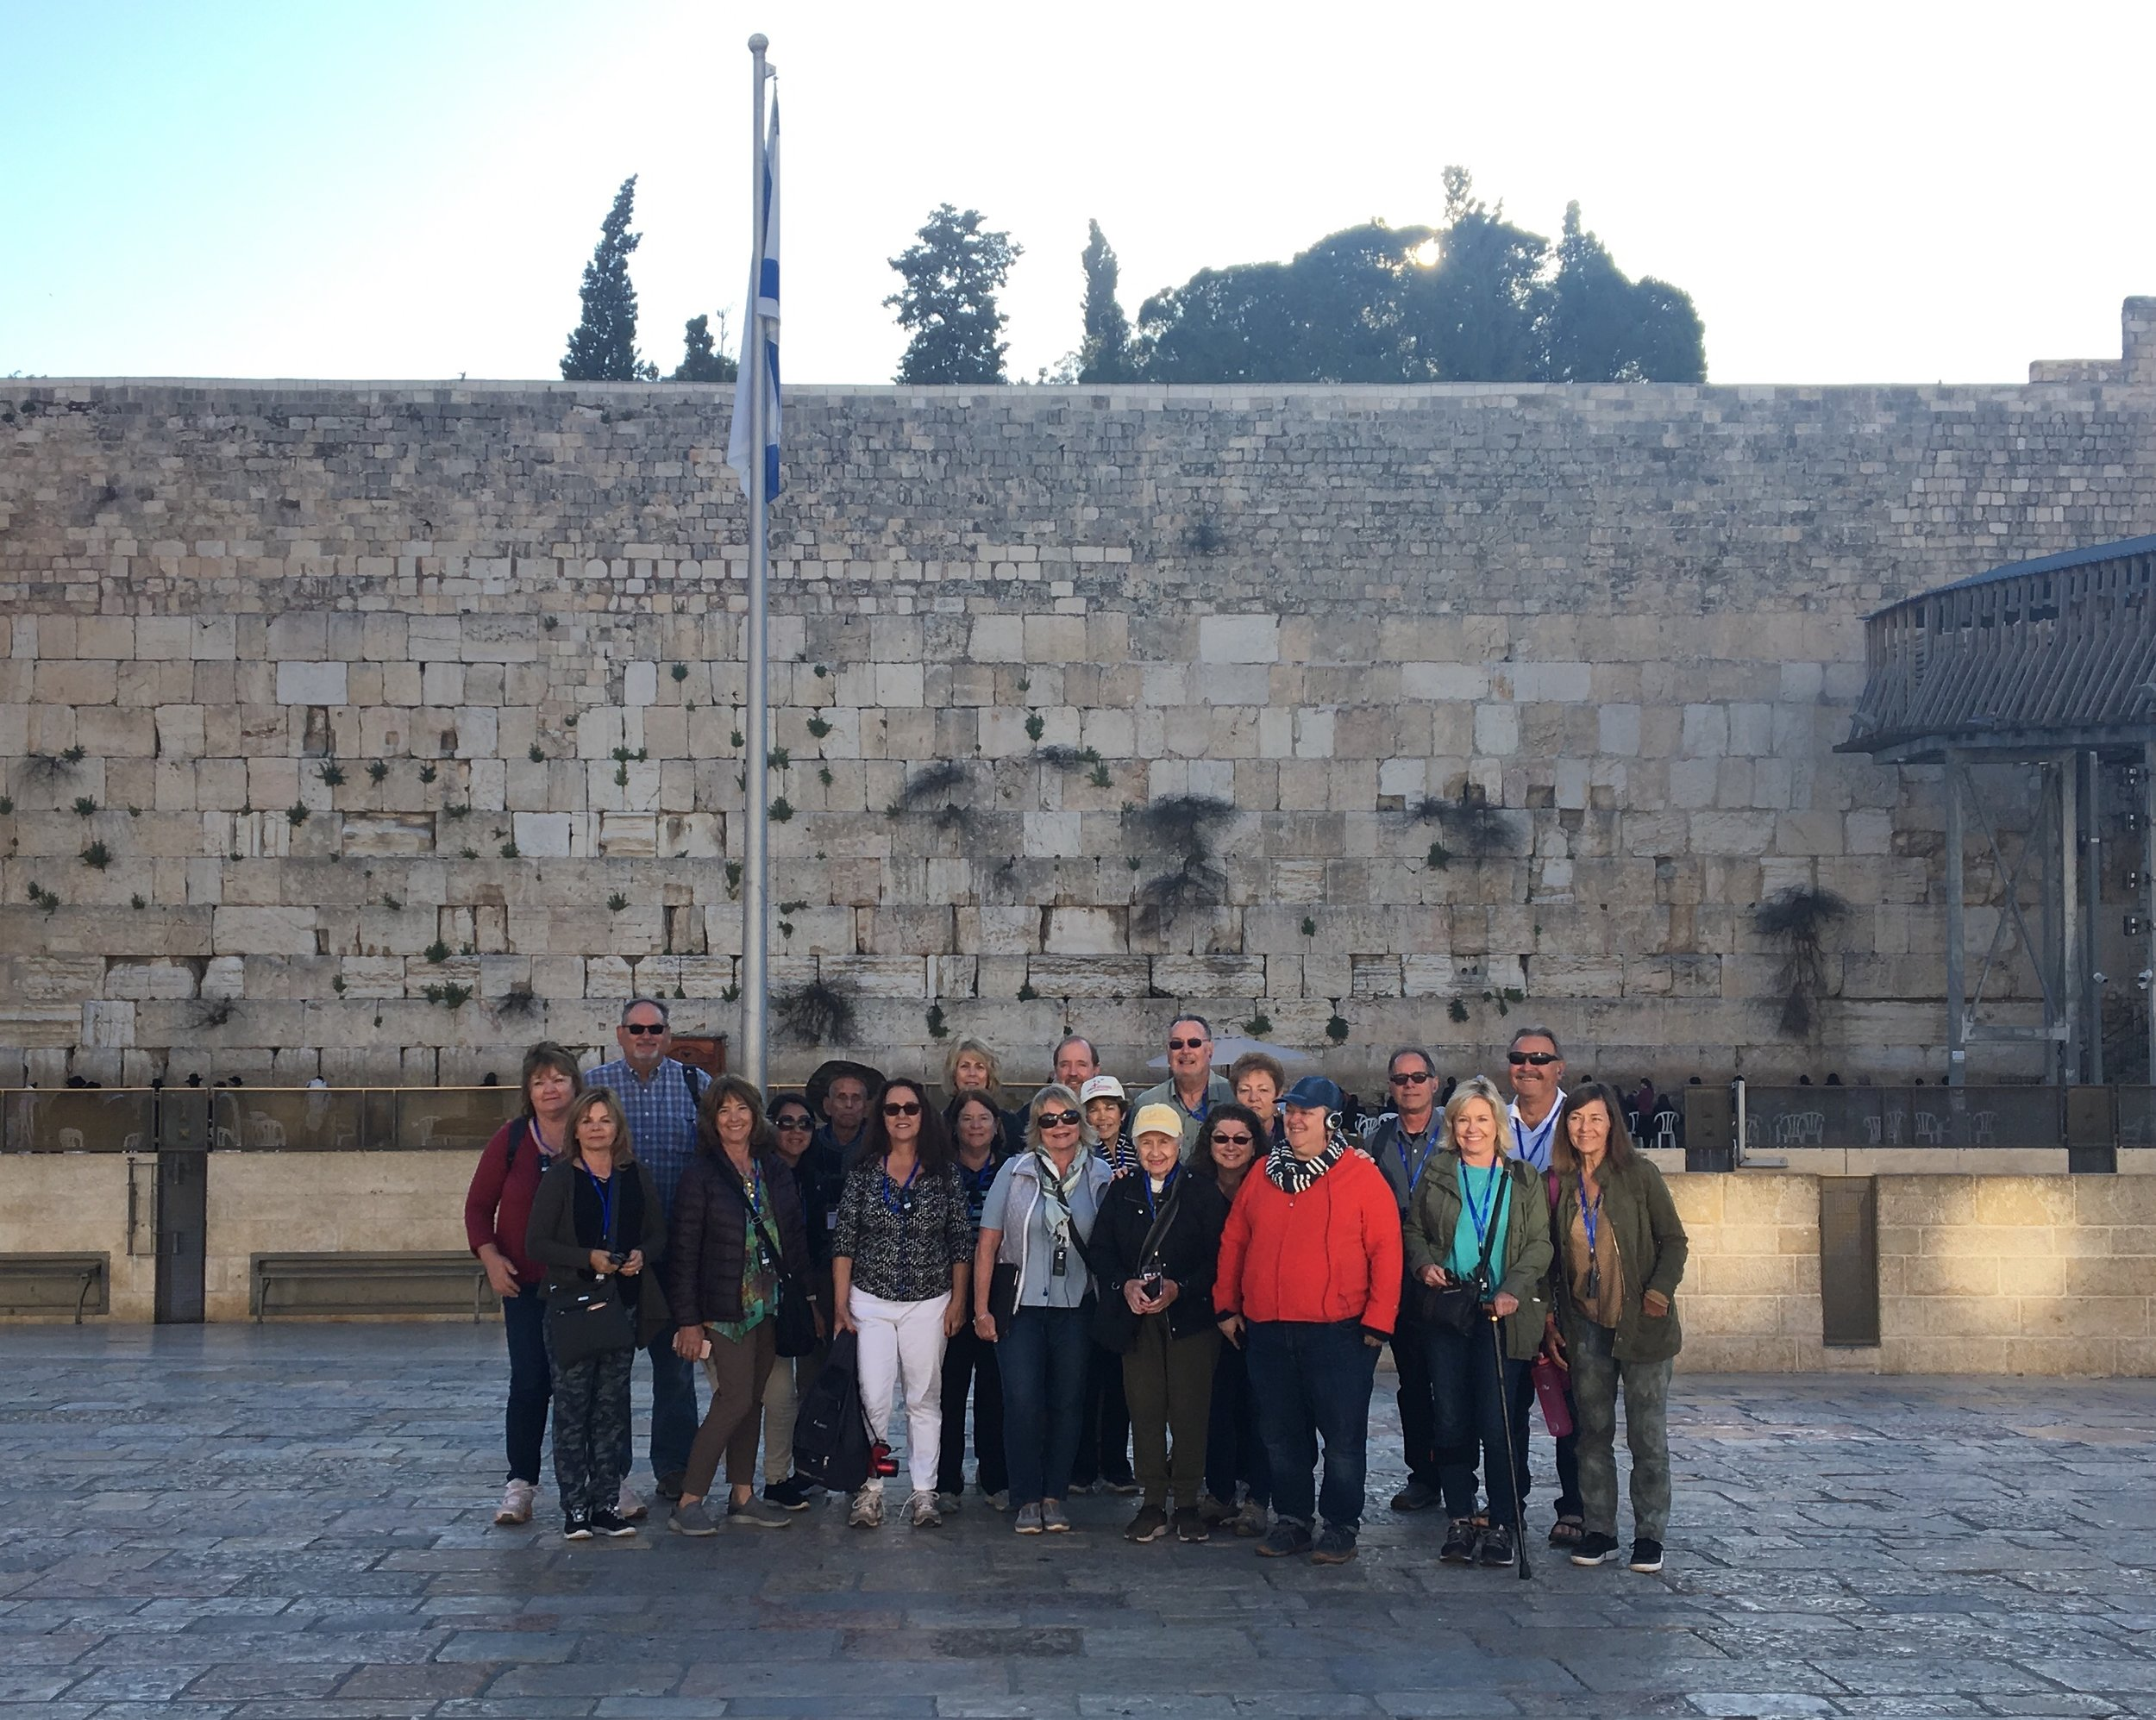 In front of the Western Wall